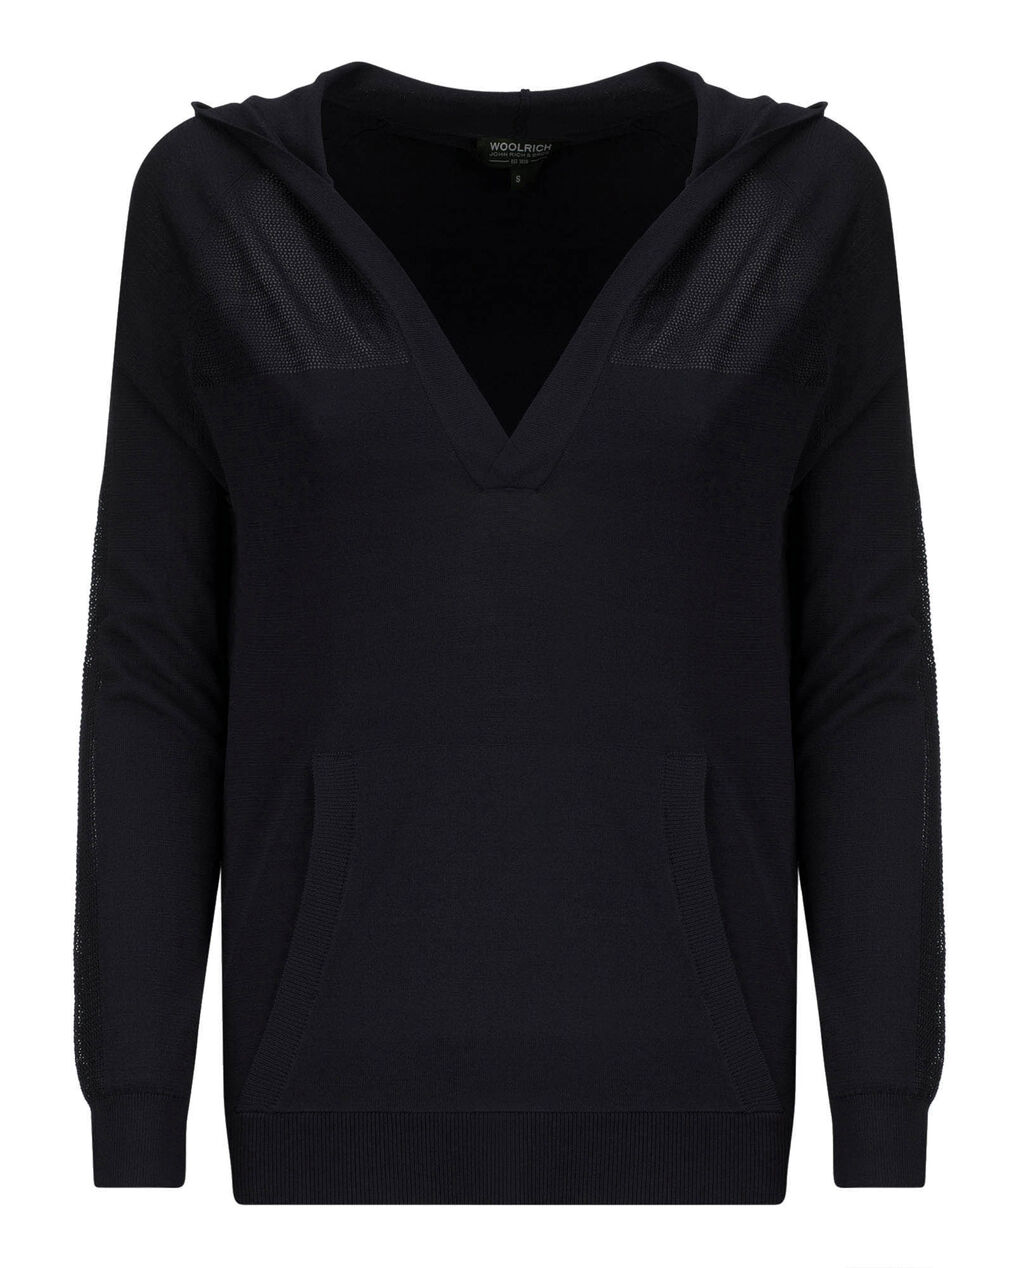 W'S Crepe Viscose Hoodie, NIGHT SKY, hi-res